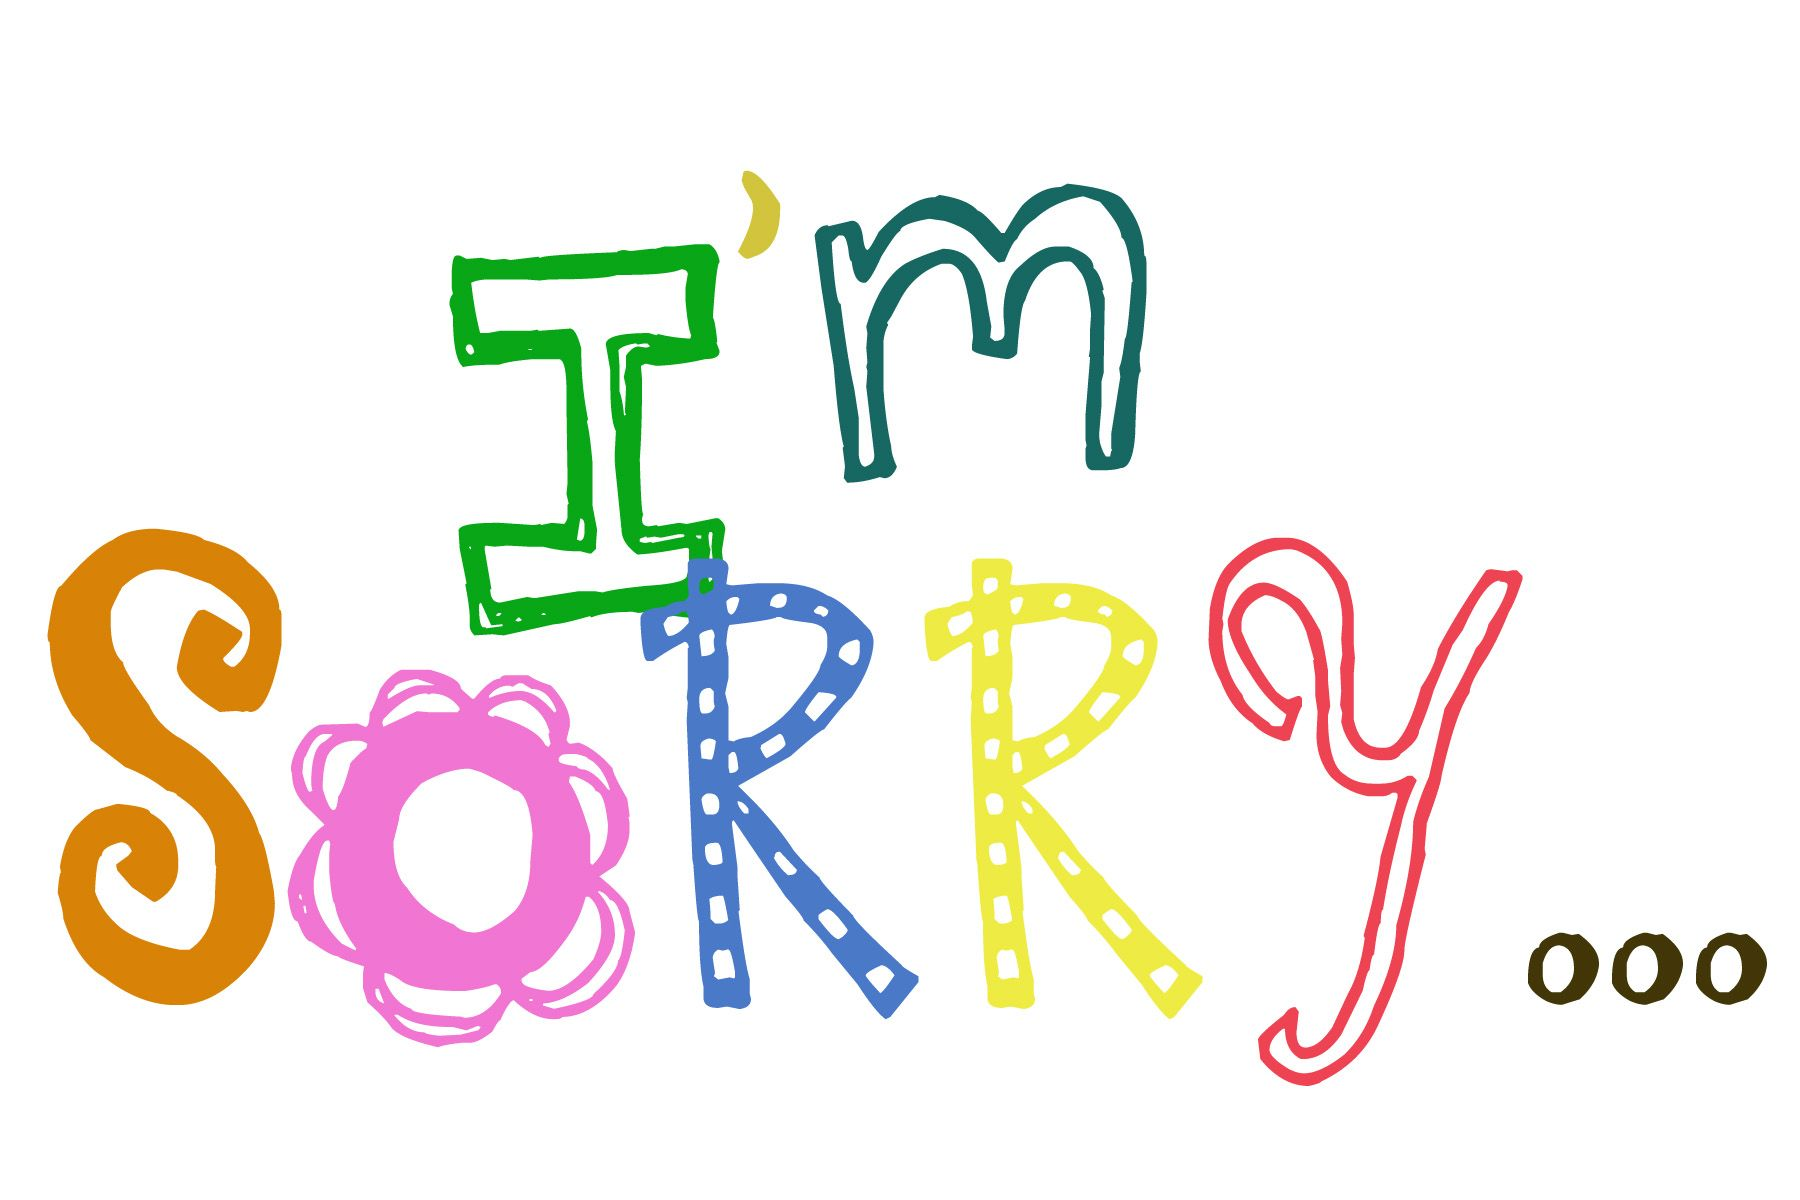 im sorry my humble apologies pinterest explore profile pictures desktop and more altavistaventures Image collections